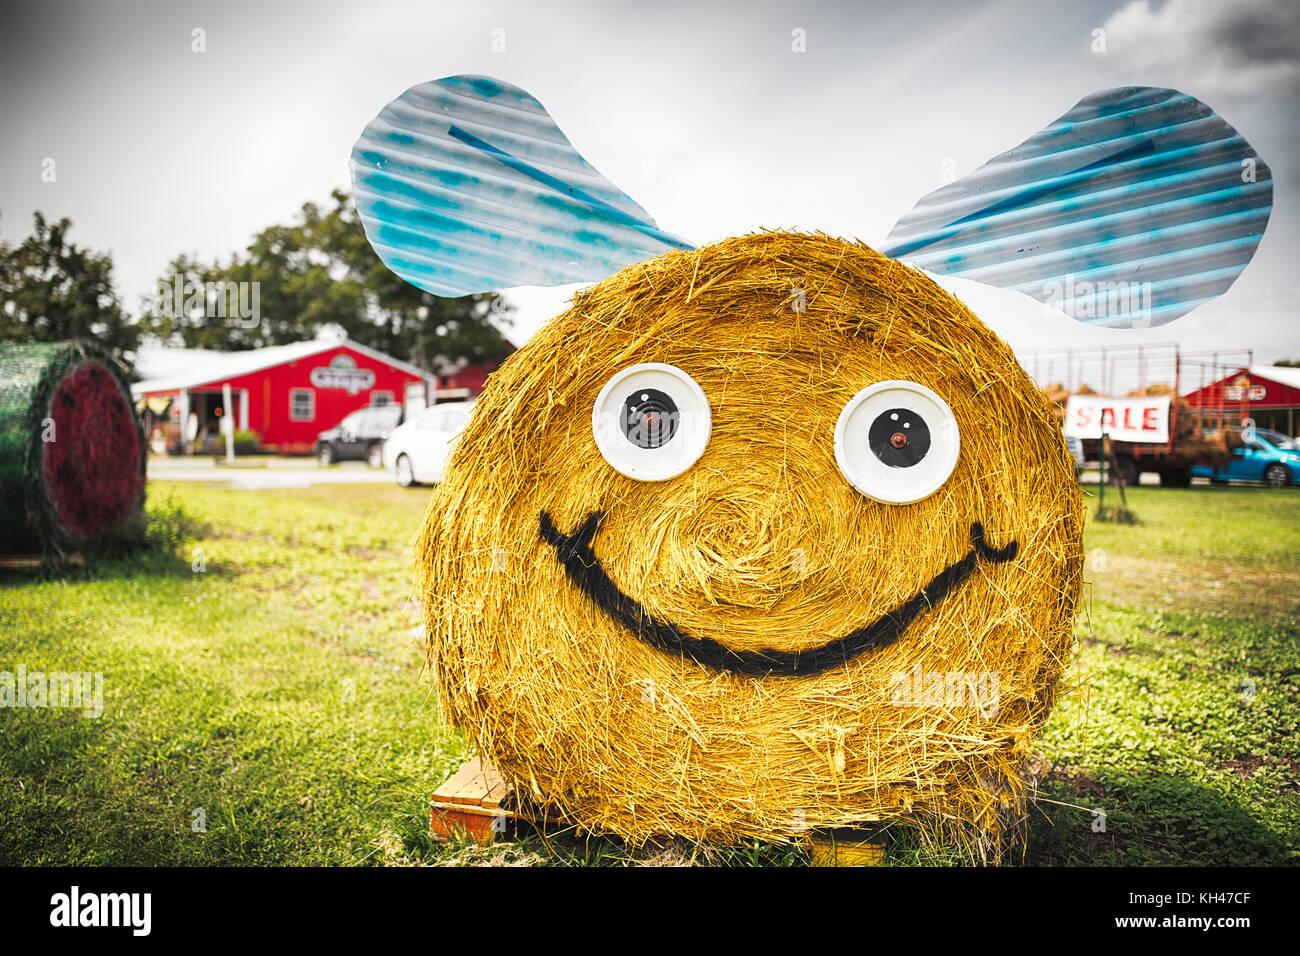 Hay Bale Decorationsa Bumble Bee Resemblance on a Farmstand, New Jersey - Stock Image